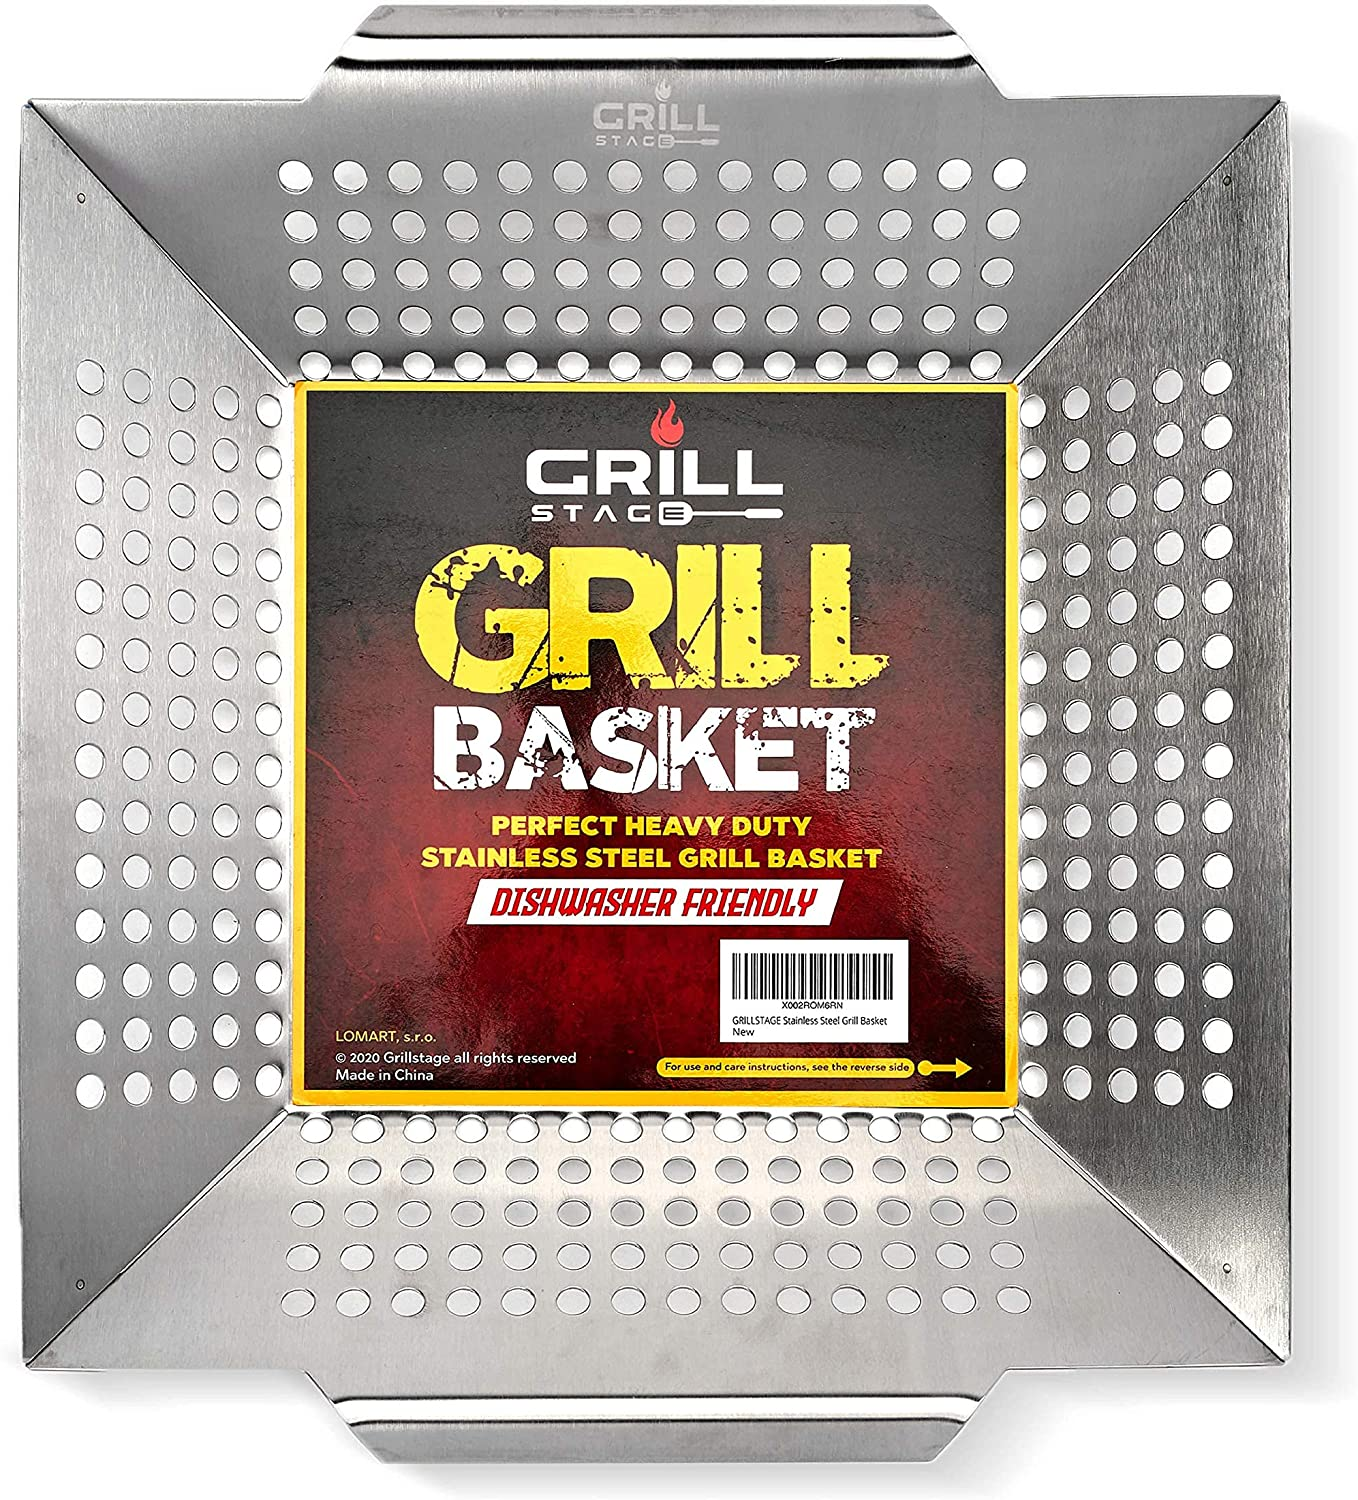 Heavy Duty Stainless Steel Grill Basket - Large, Thick Bbq Vegetable Grilling Basket Is Perfect For Grills, Smokers & Even Indoor Use - The Surface Is Very Easy To Clean When You're Done Using It